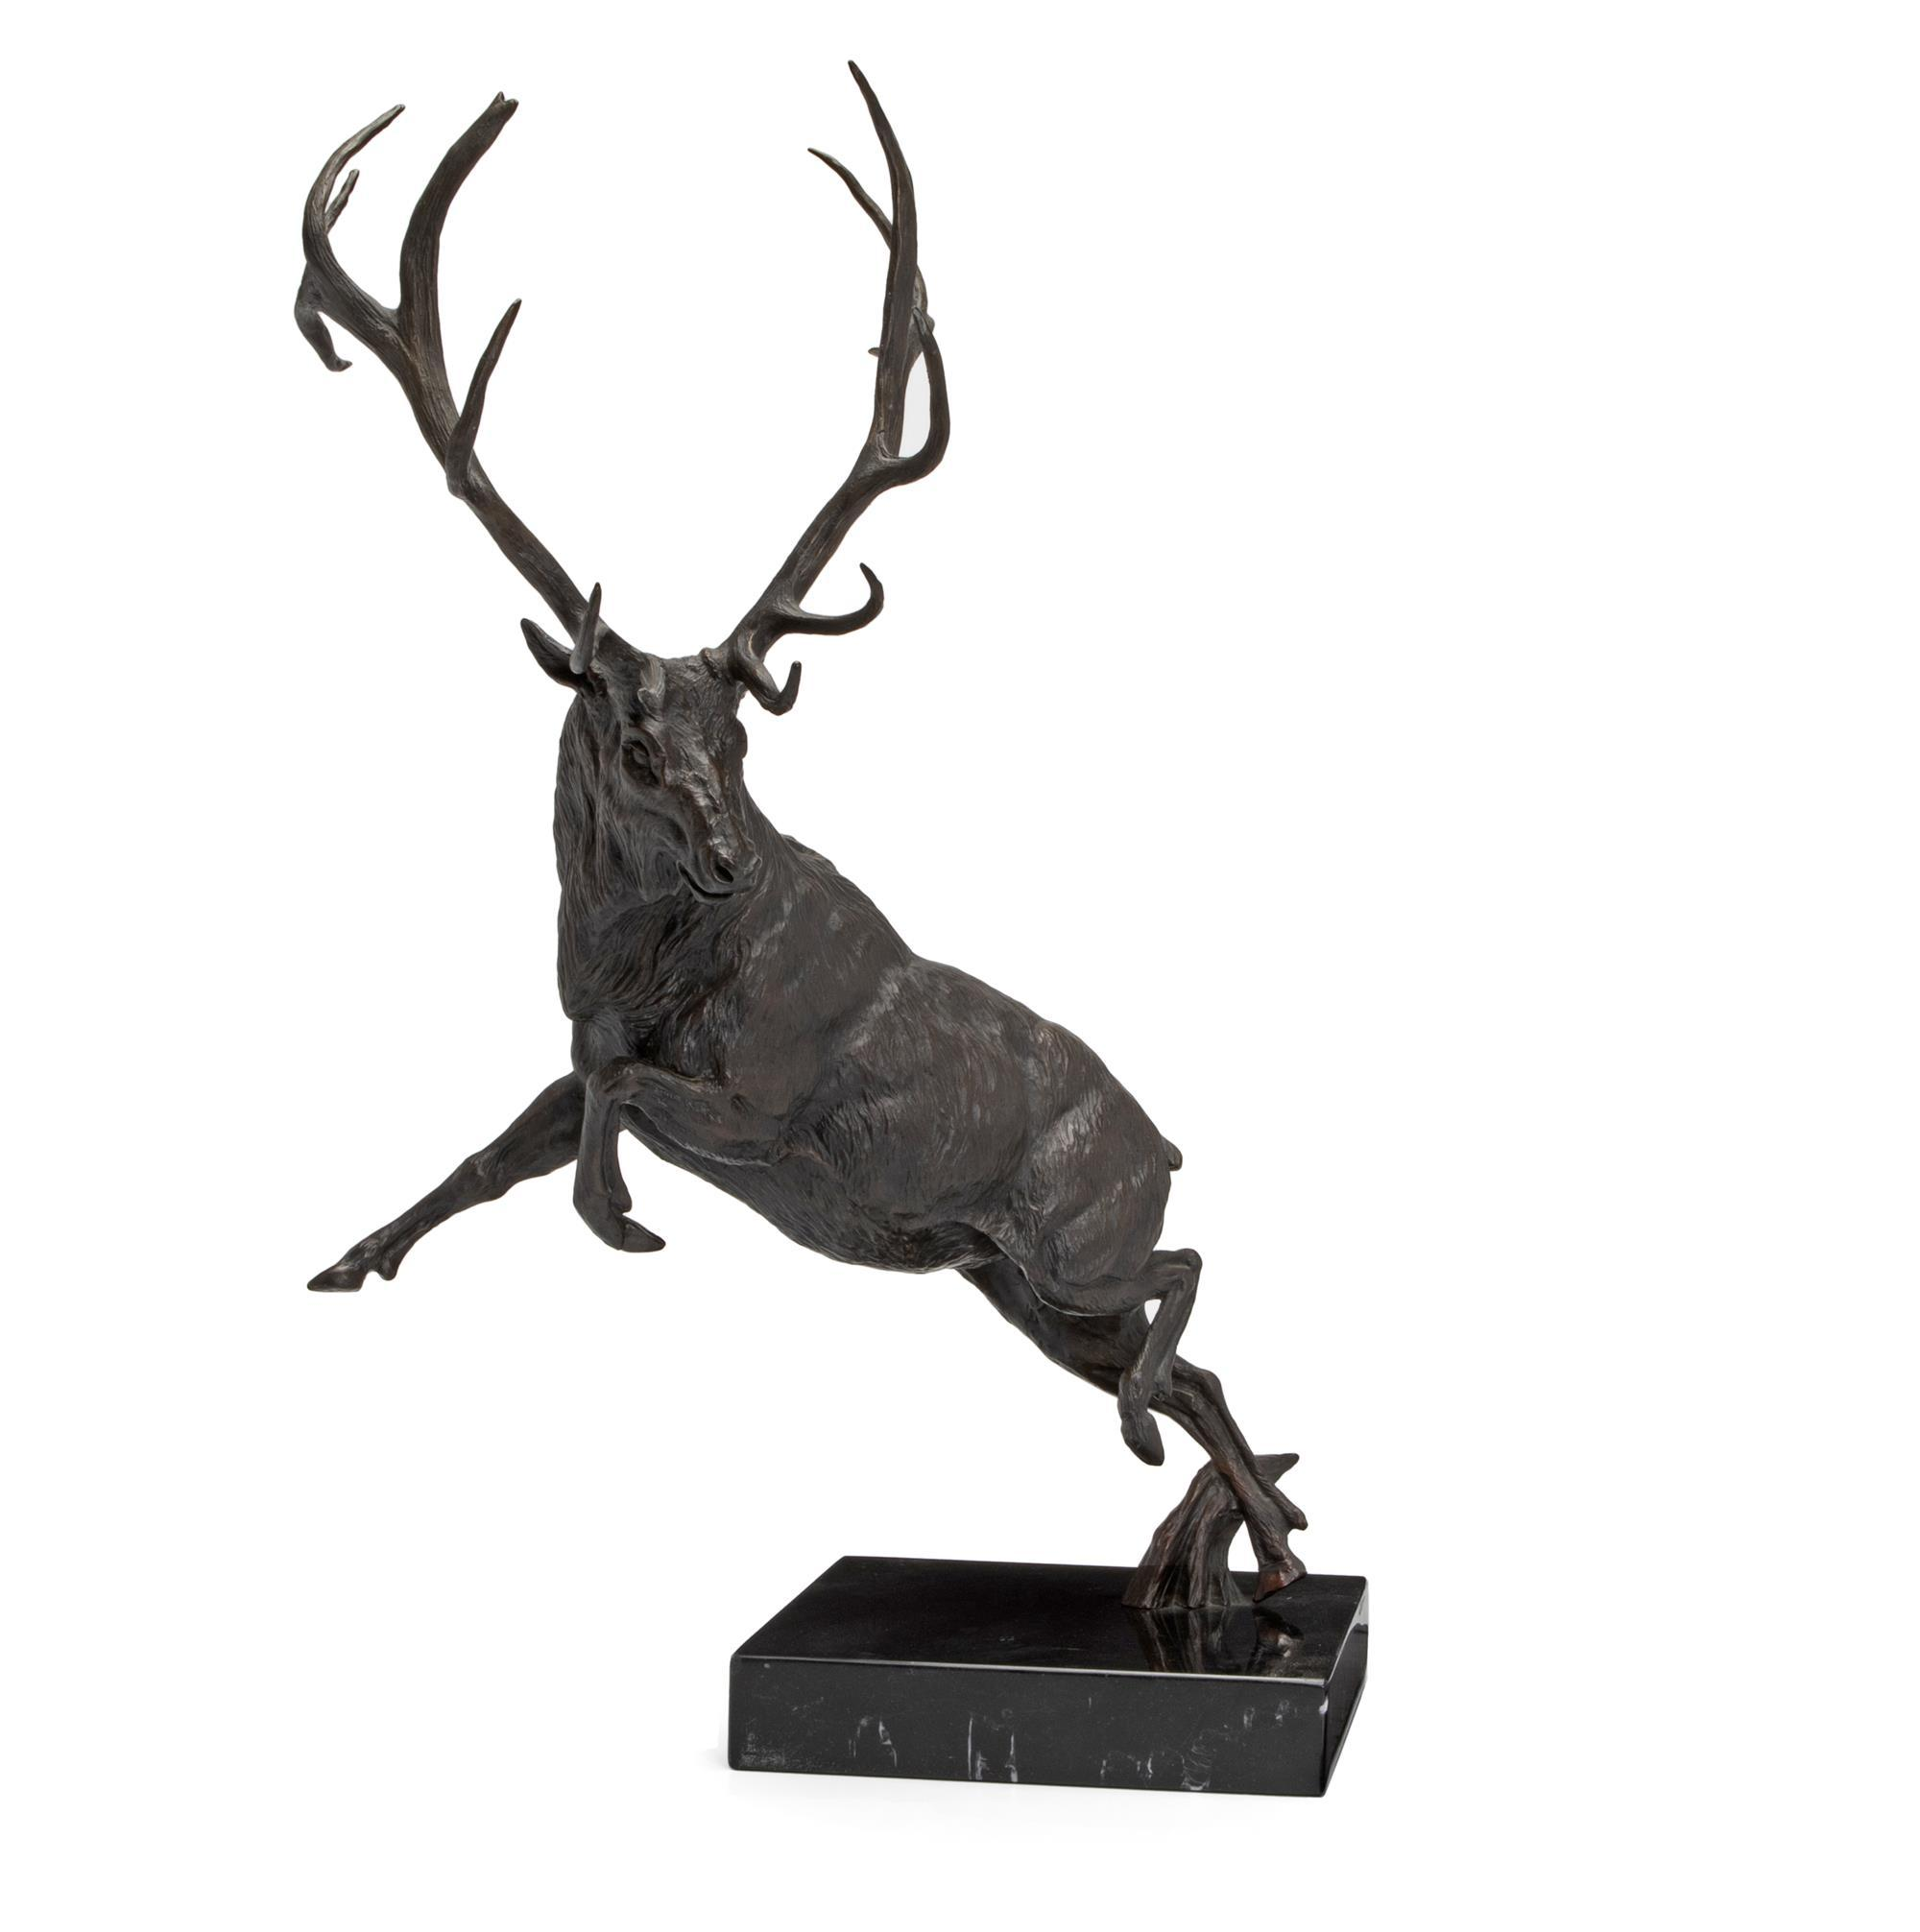 "David Schaefer, (1949 - 2012, American), Elk, Bronze on marble base, Overall: 28"" H x 19.5"" W x 16.5"" D"